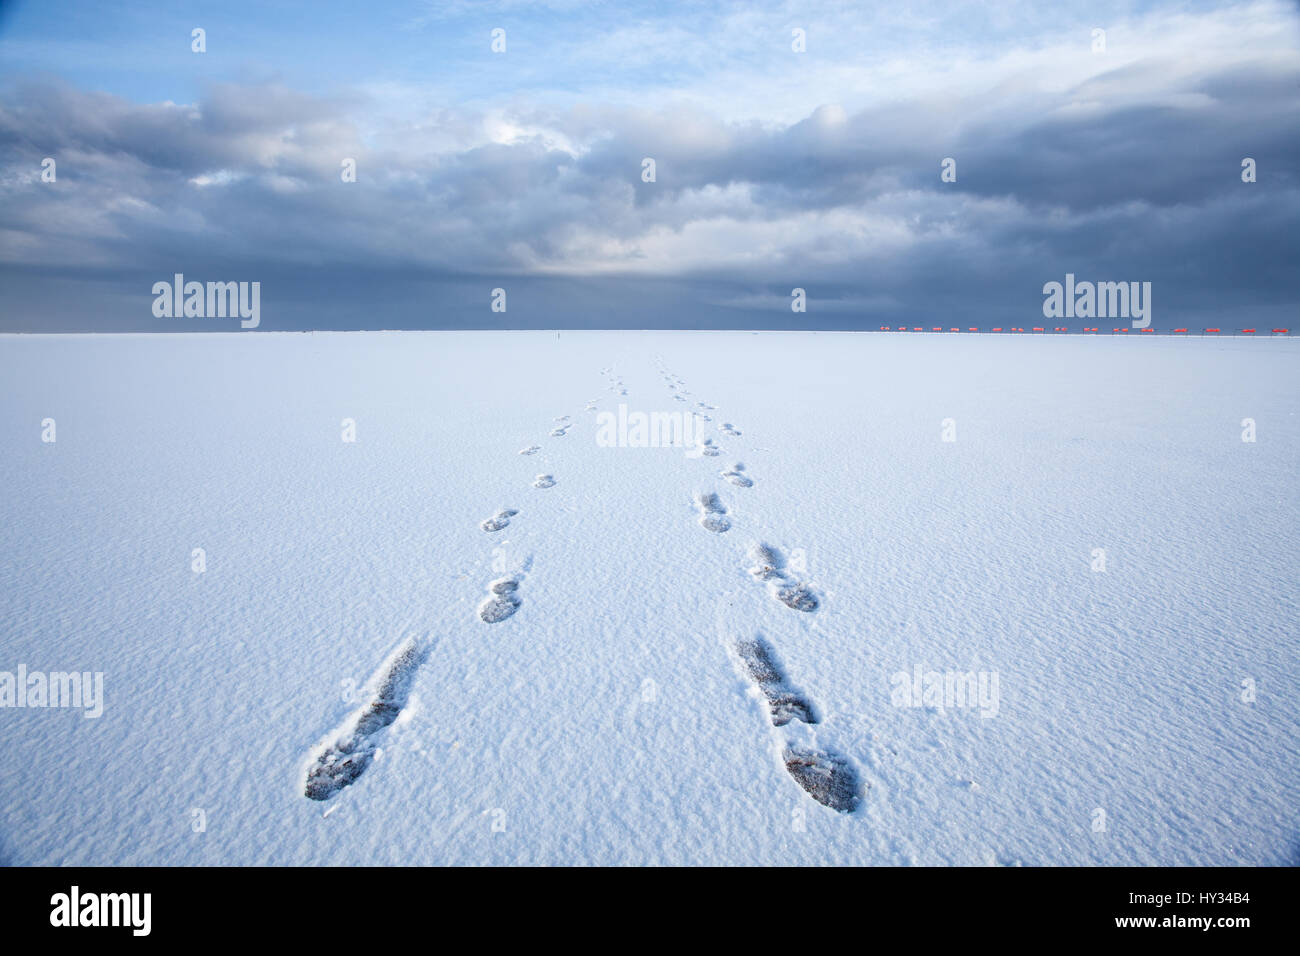 Footsteps in a flat cold snow-filled landscape at Donna Nook, Lincolnshire, Great Britain, Europe. - Stock Image